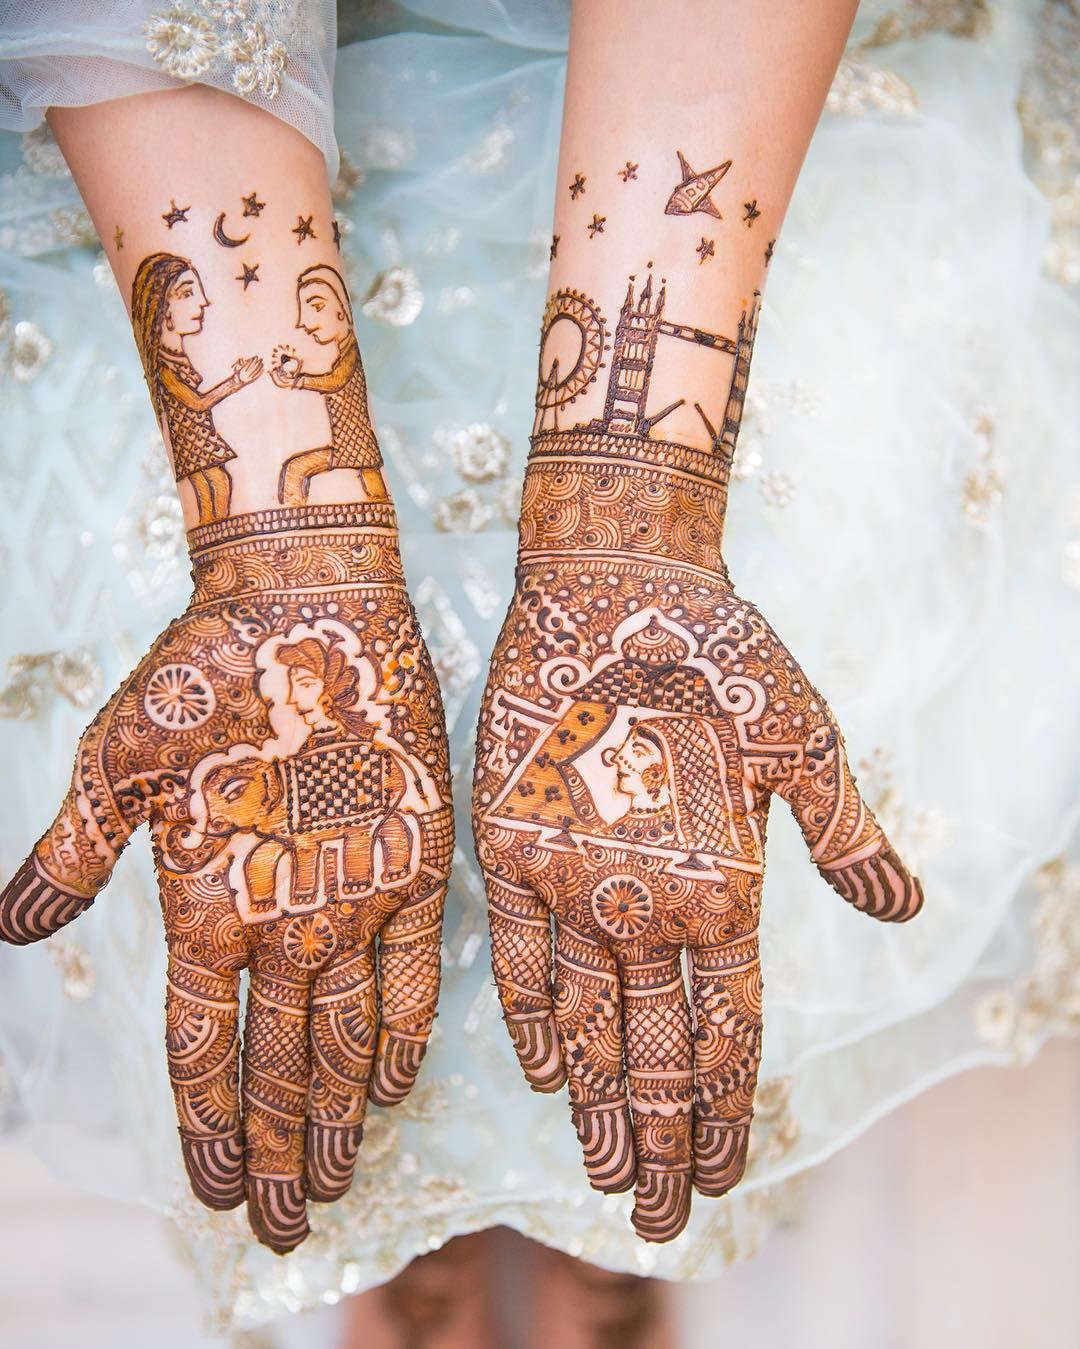 Latest bridal mehndi ideas- adding love stories in Mehndi